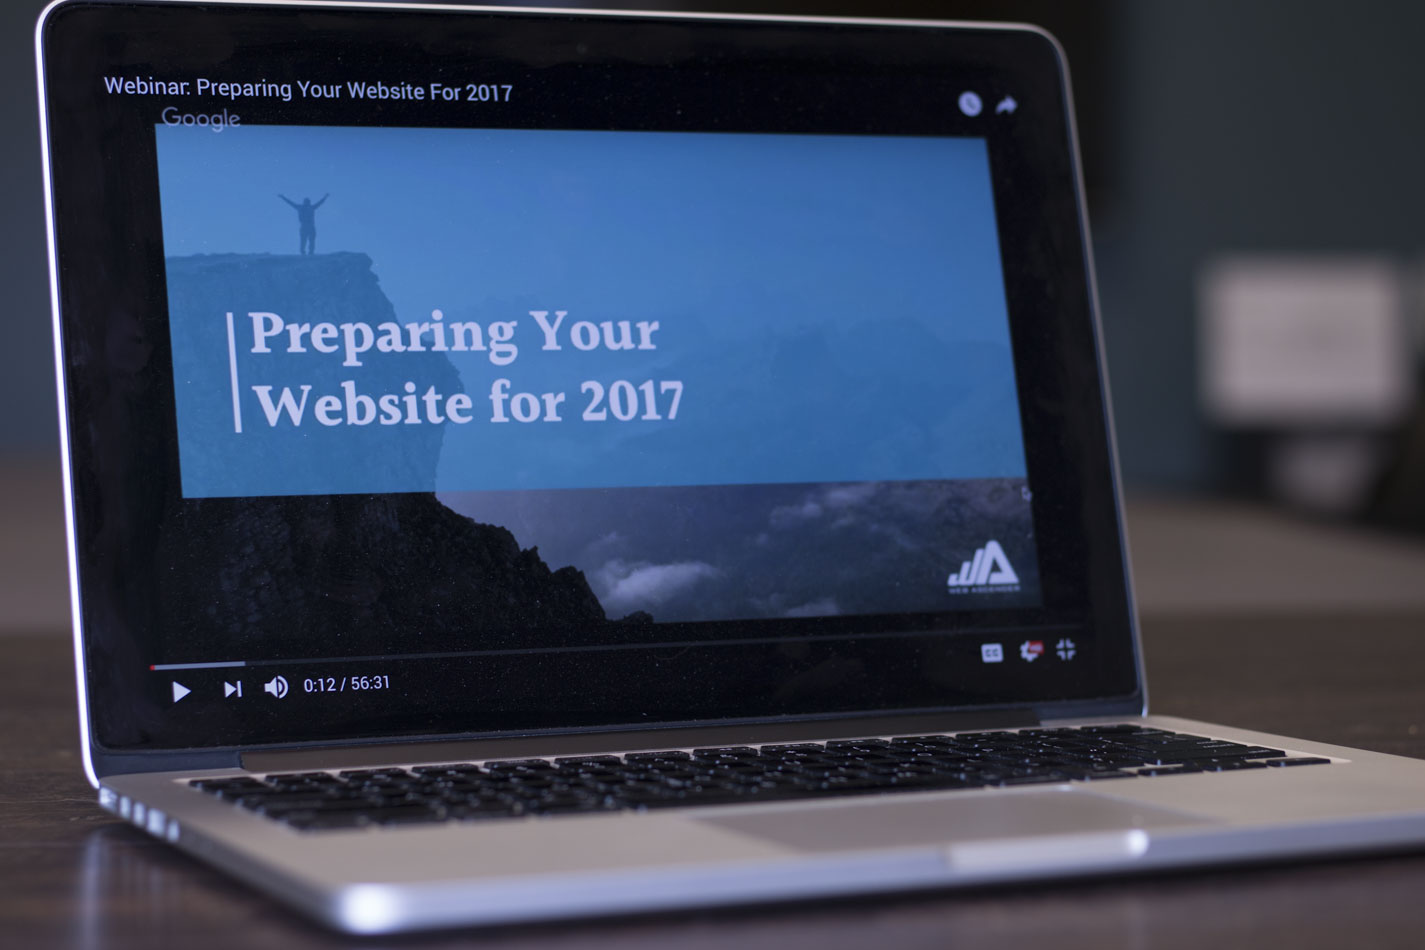 Preparing Your Website 2017